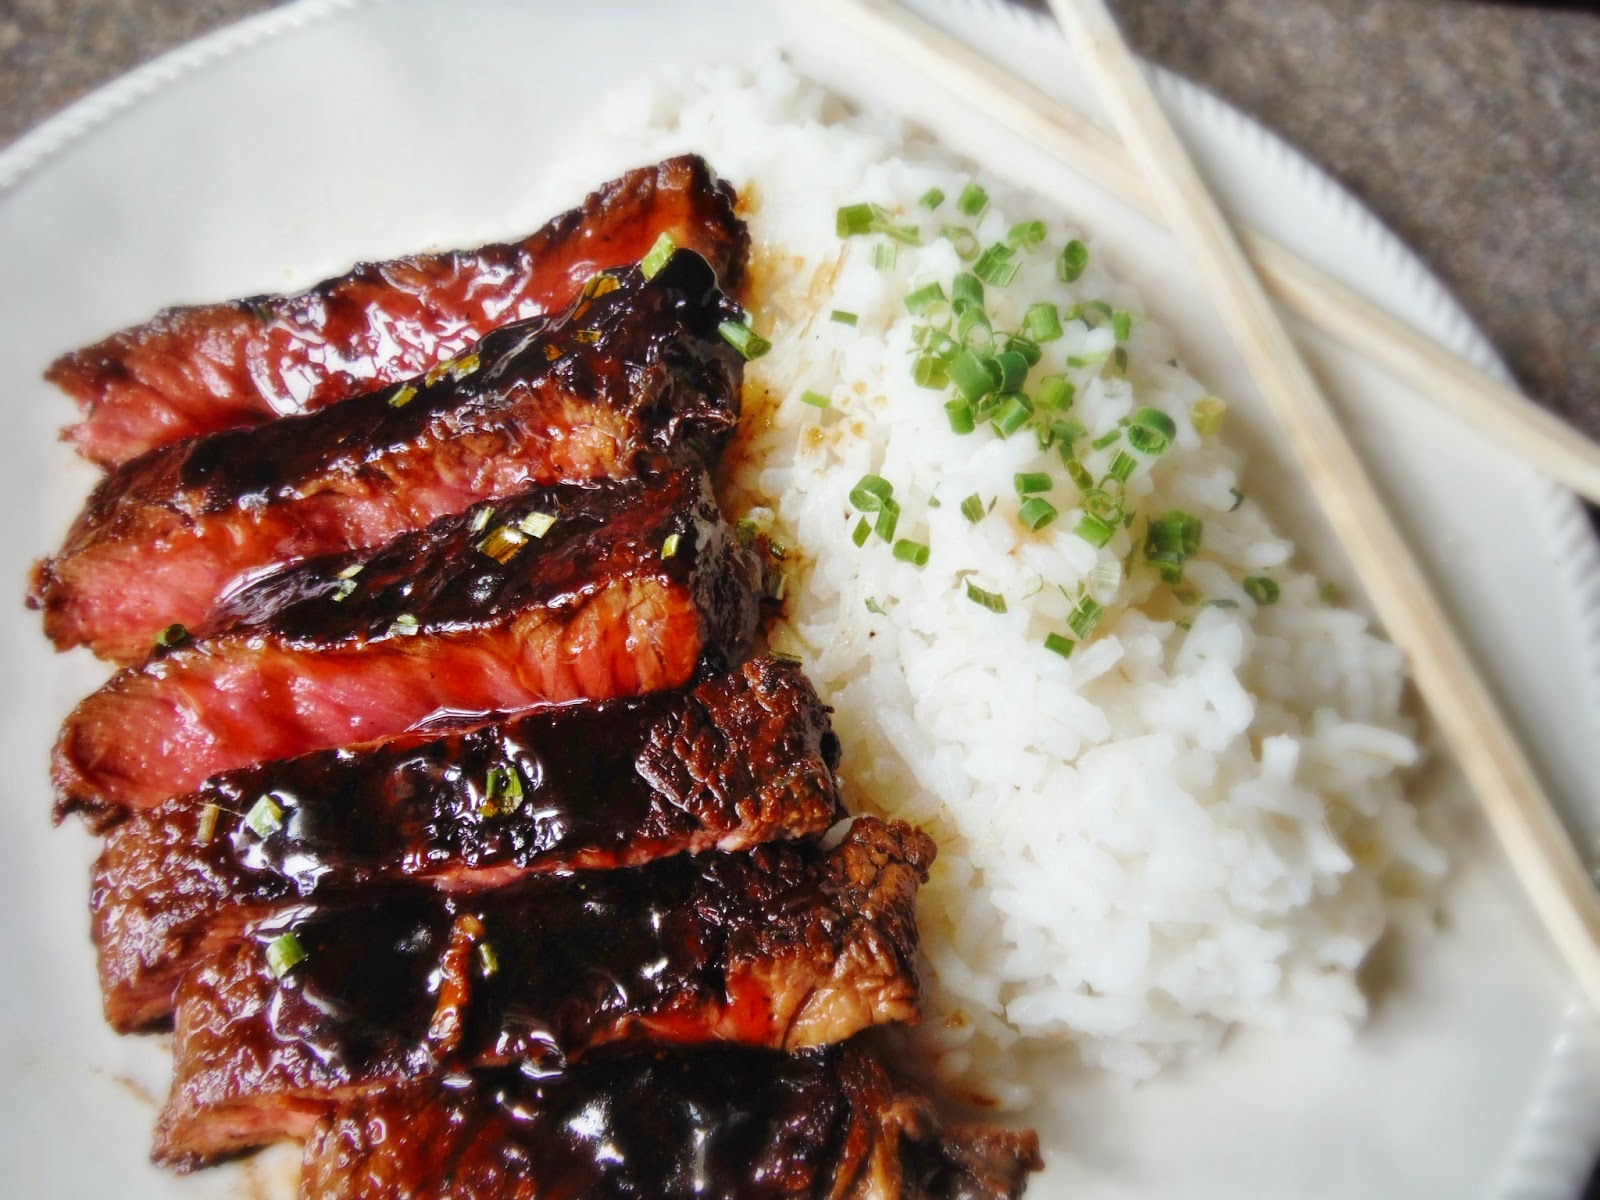 King's: Sticky Bourbon Teriyaki Seared Sirloin Steak